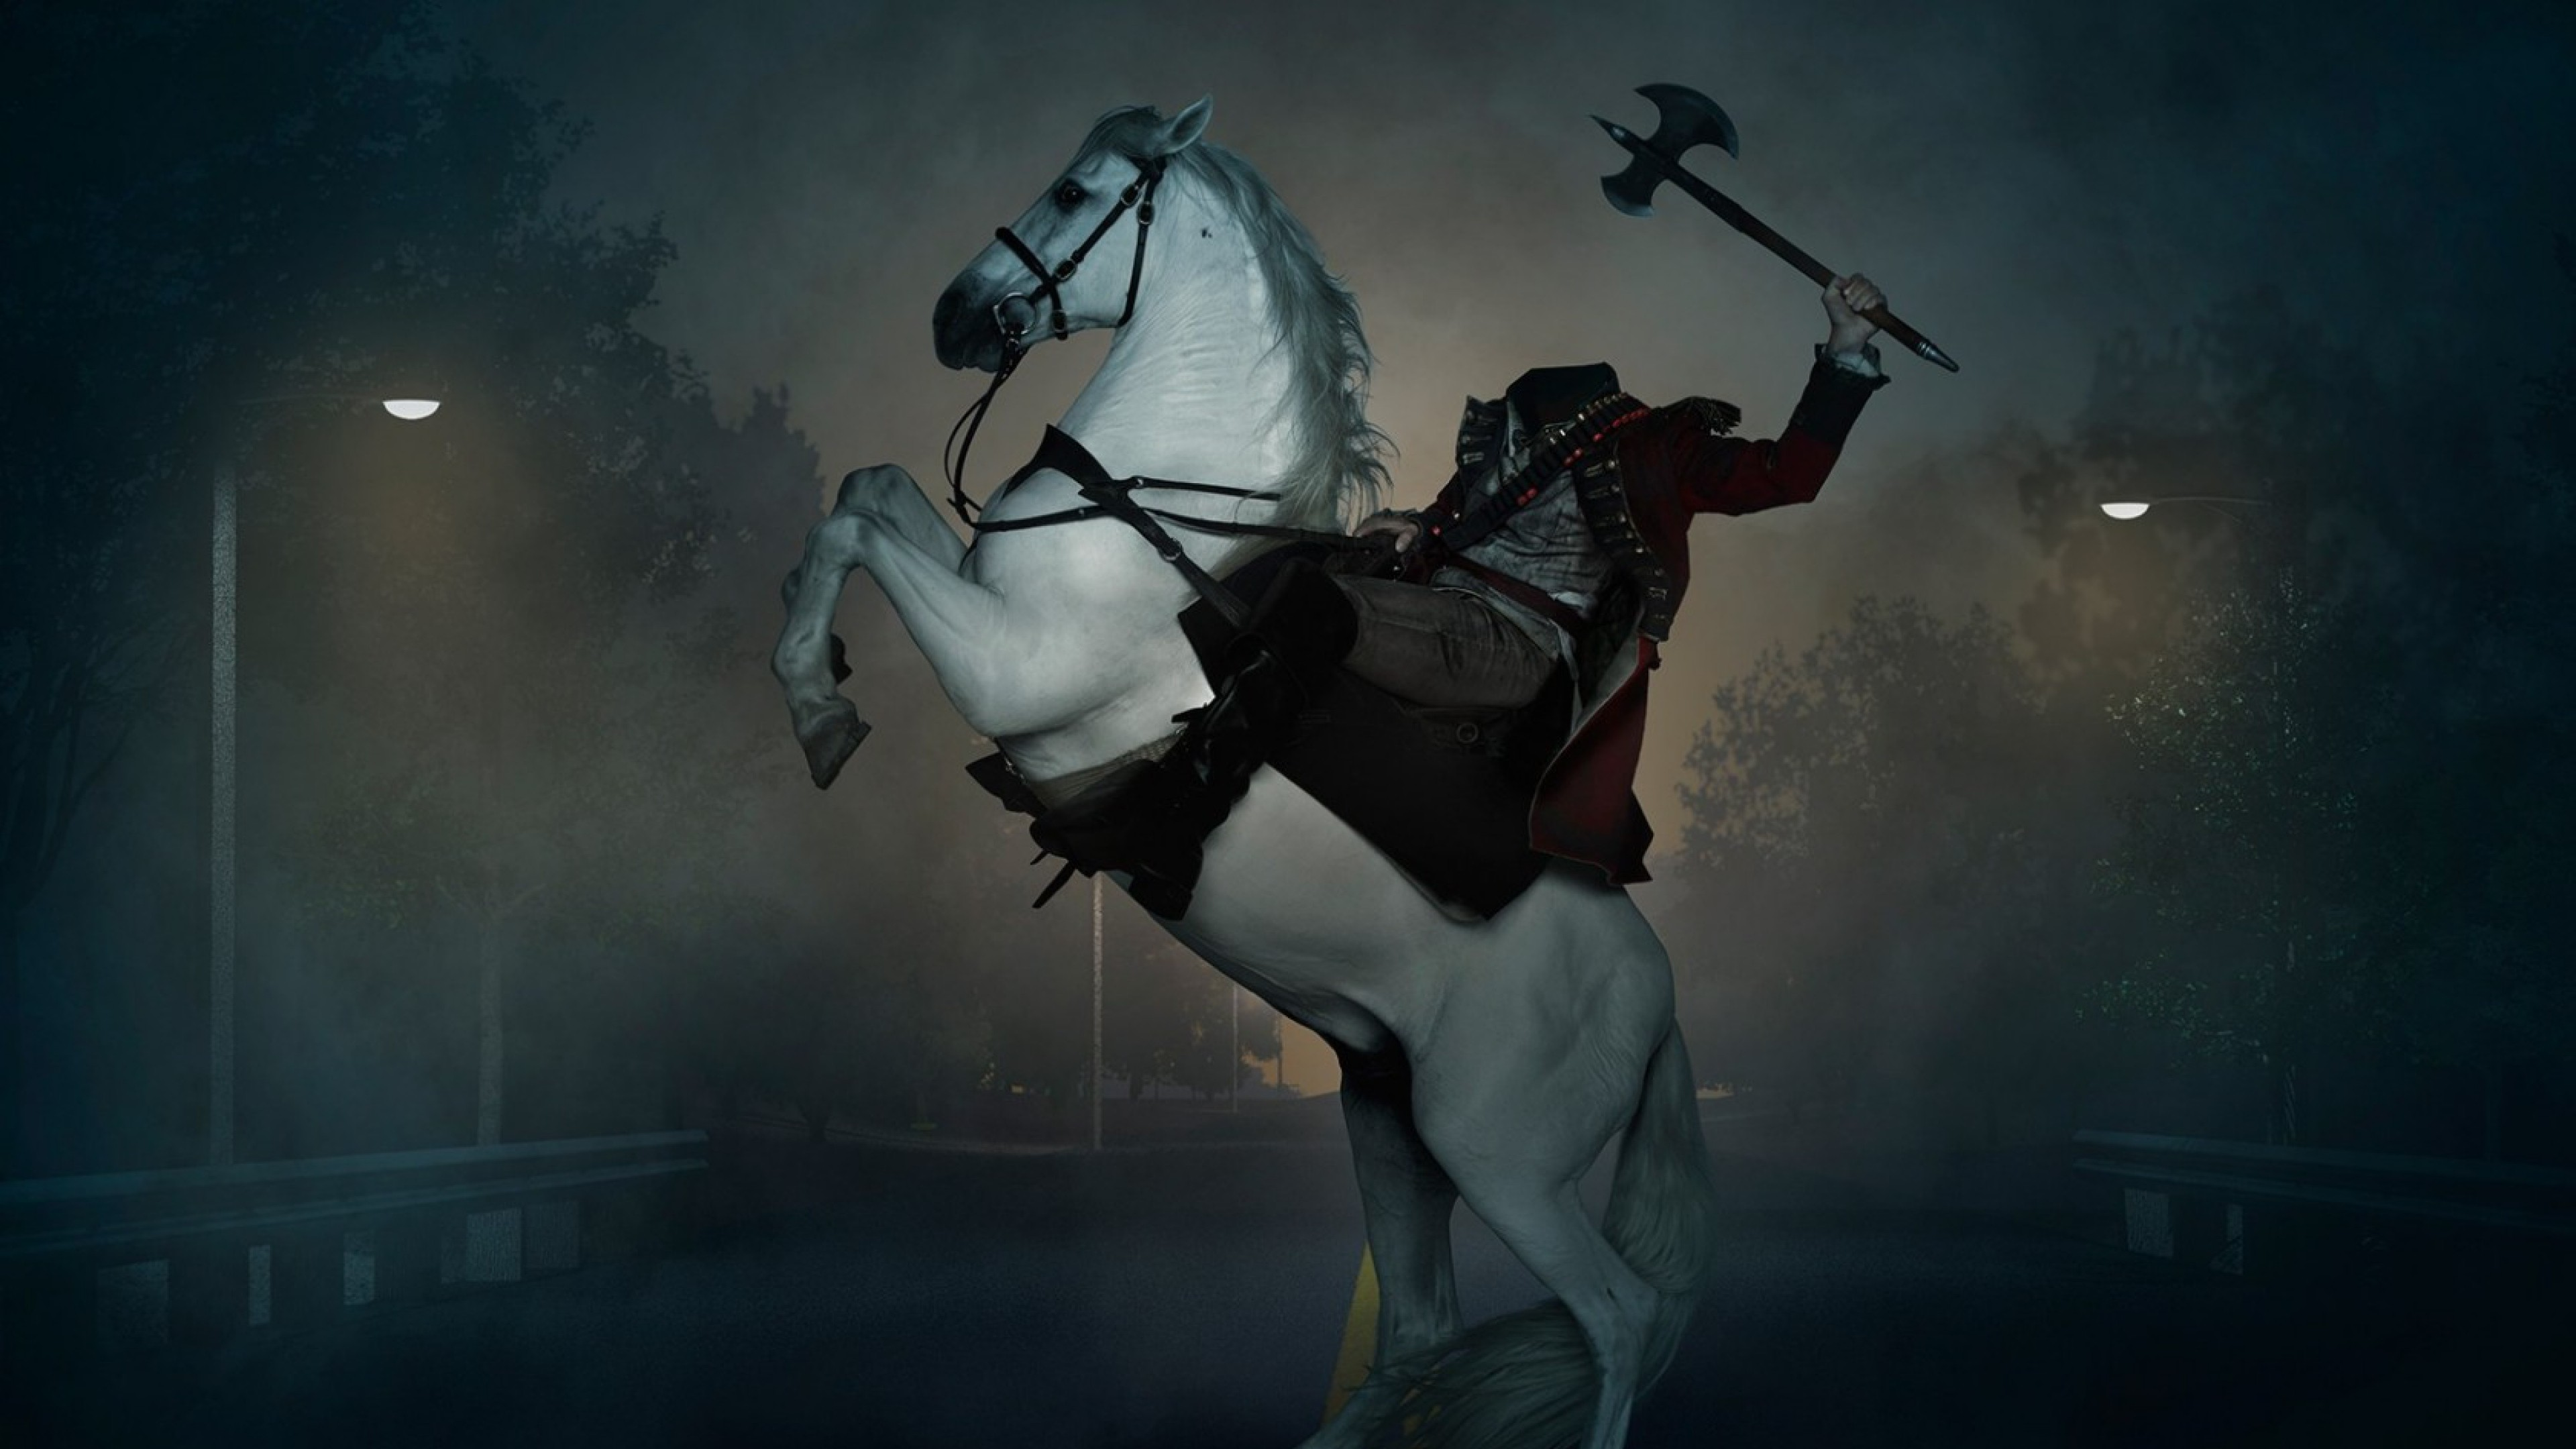 Ultra Hd Wallpapers Cars 2016 Sleepy Hollow Latest Hd Tv Shows 4k Wallpapers